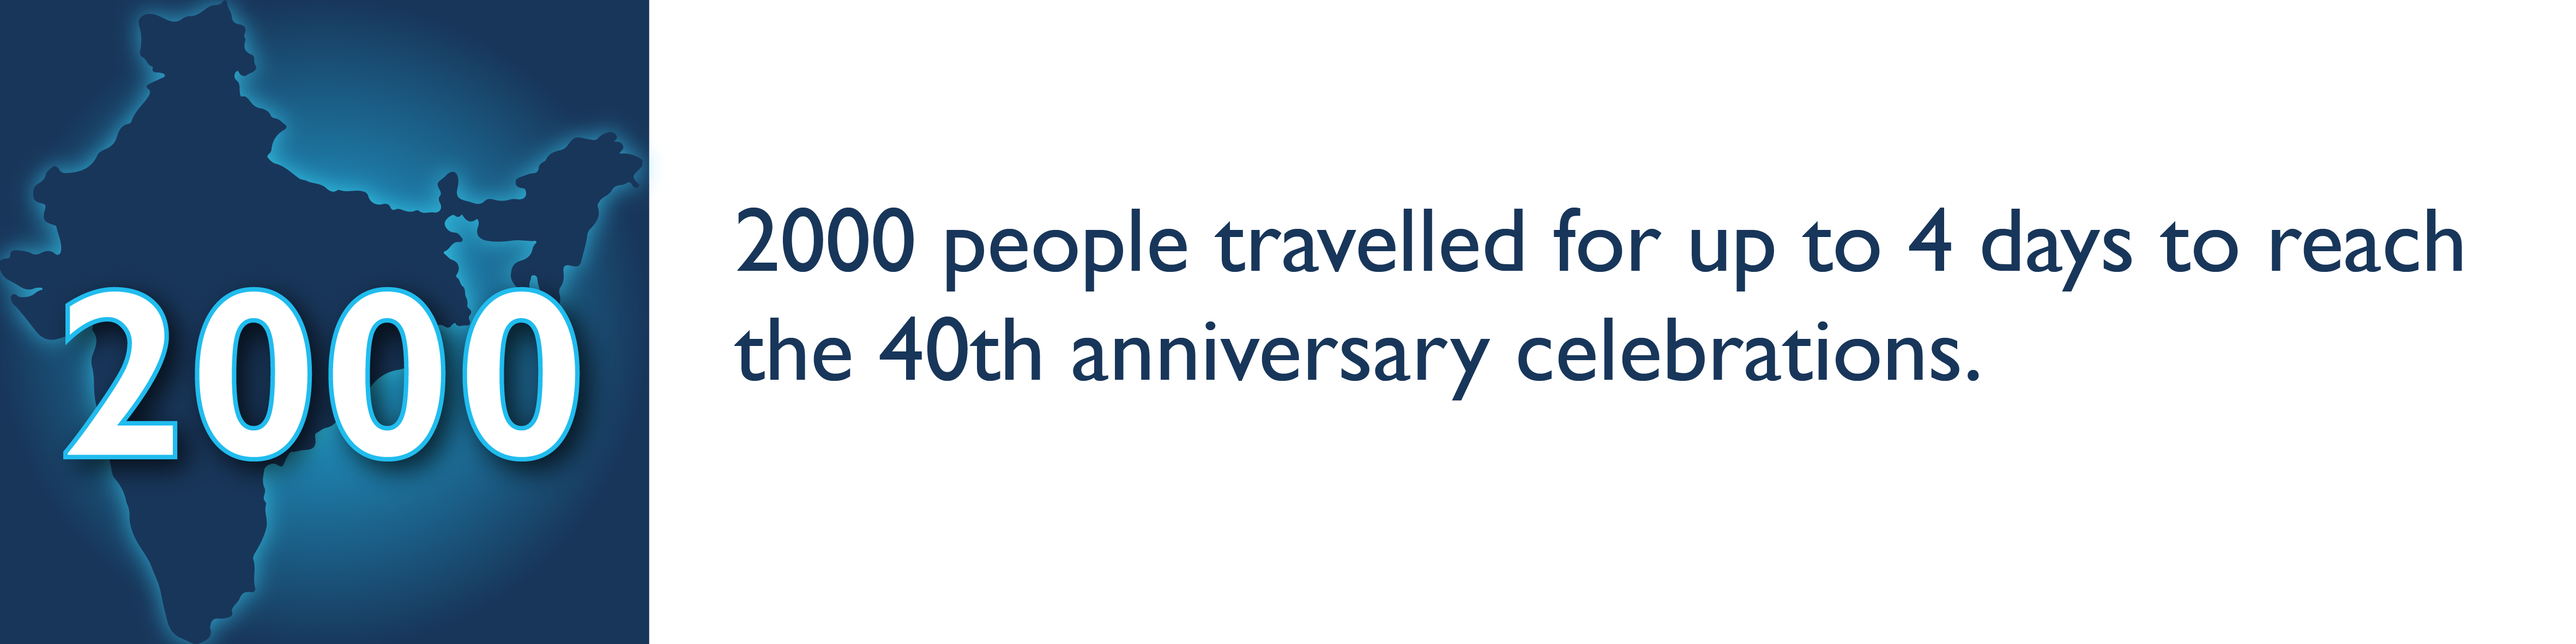 2000 people travelled for up to 4 days to reach the 40th anniversary celebrations.